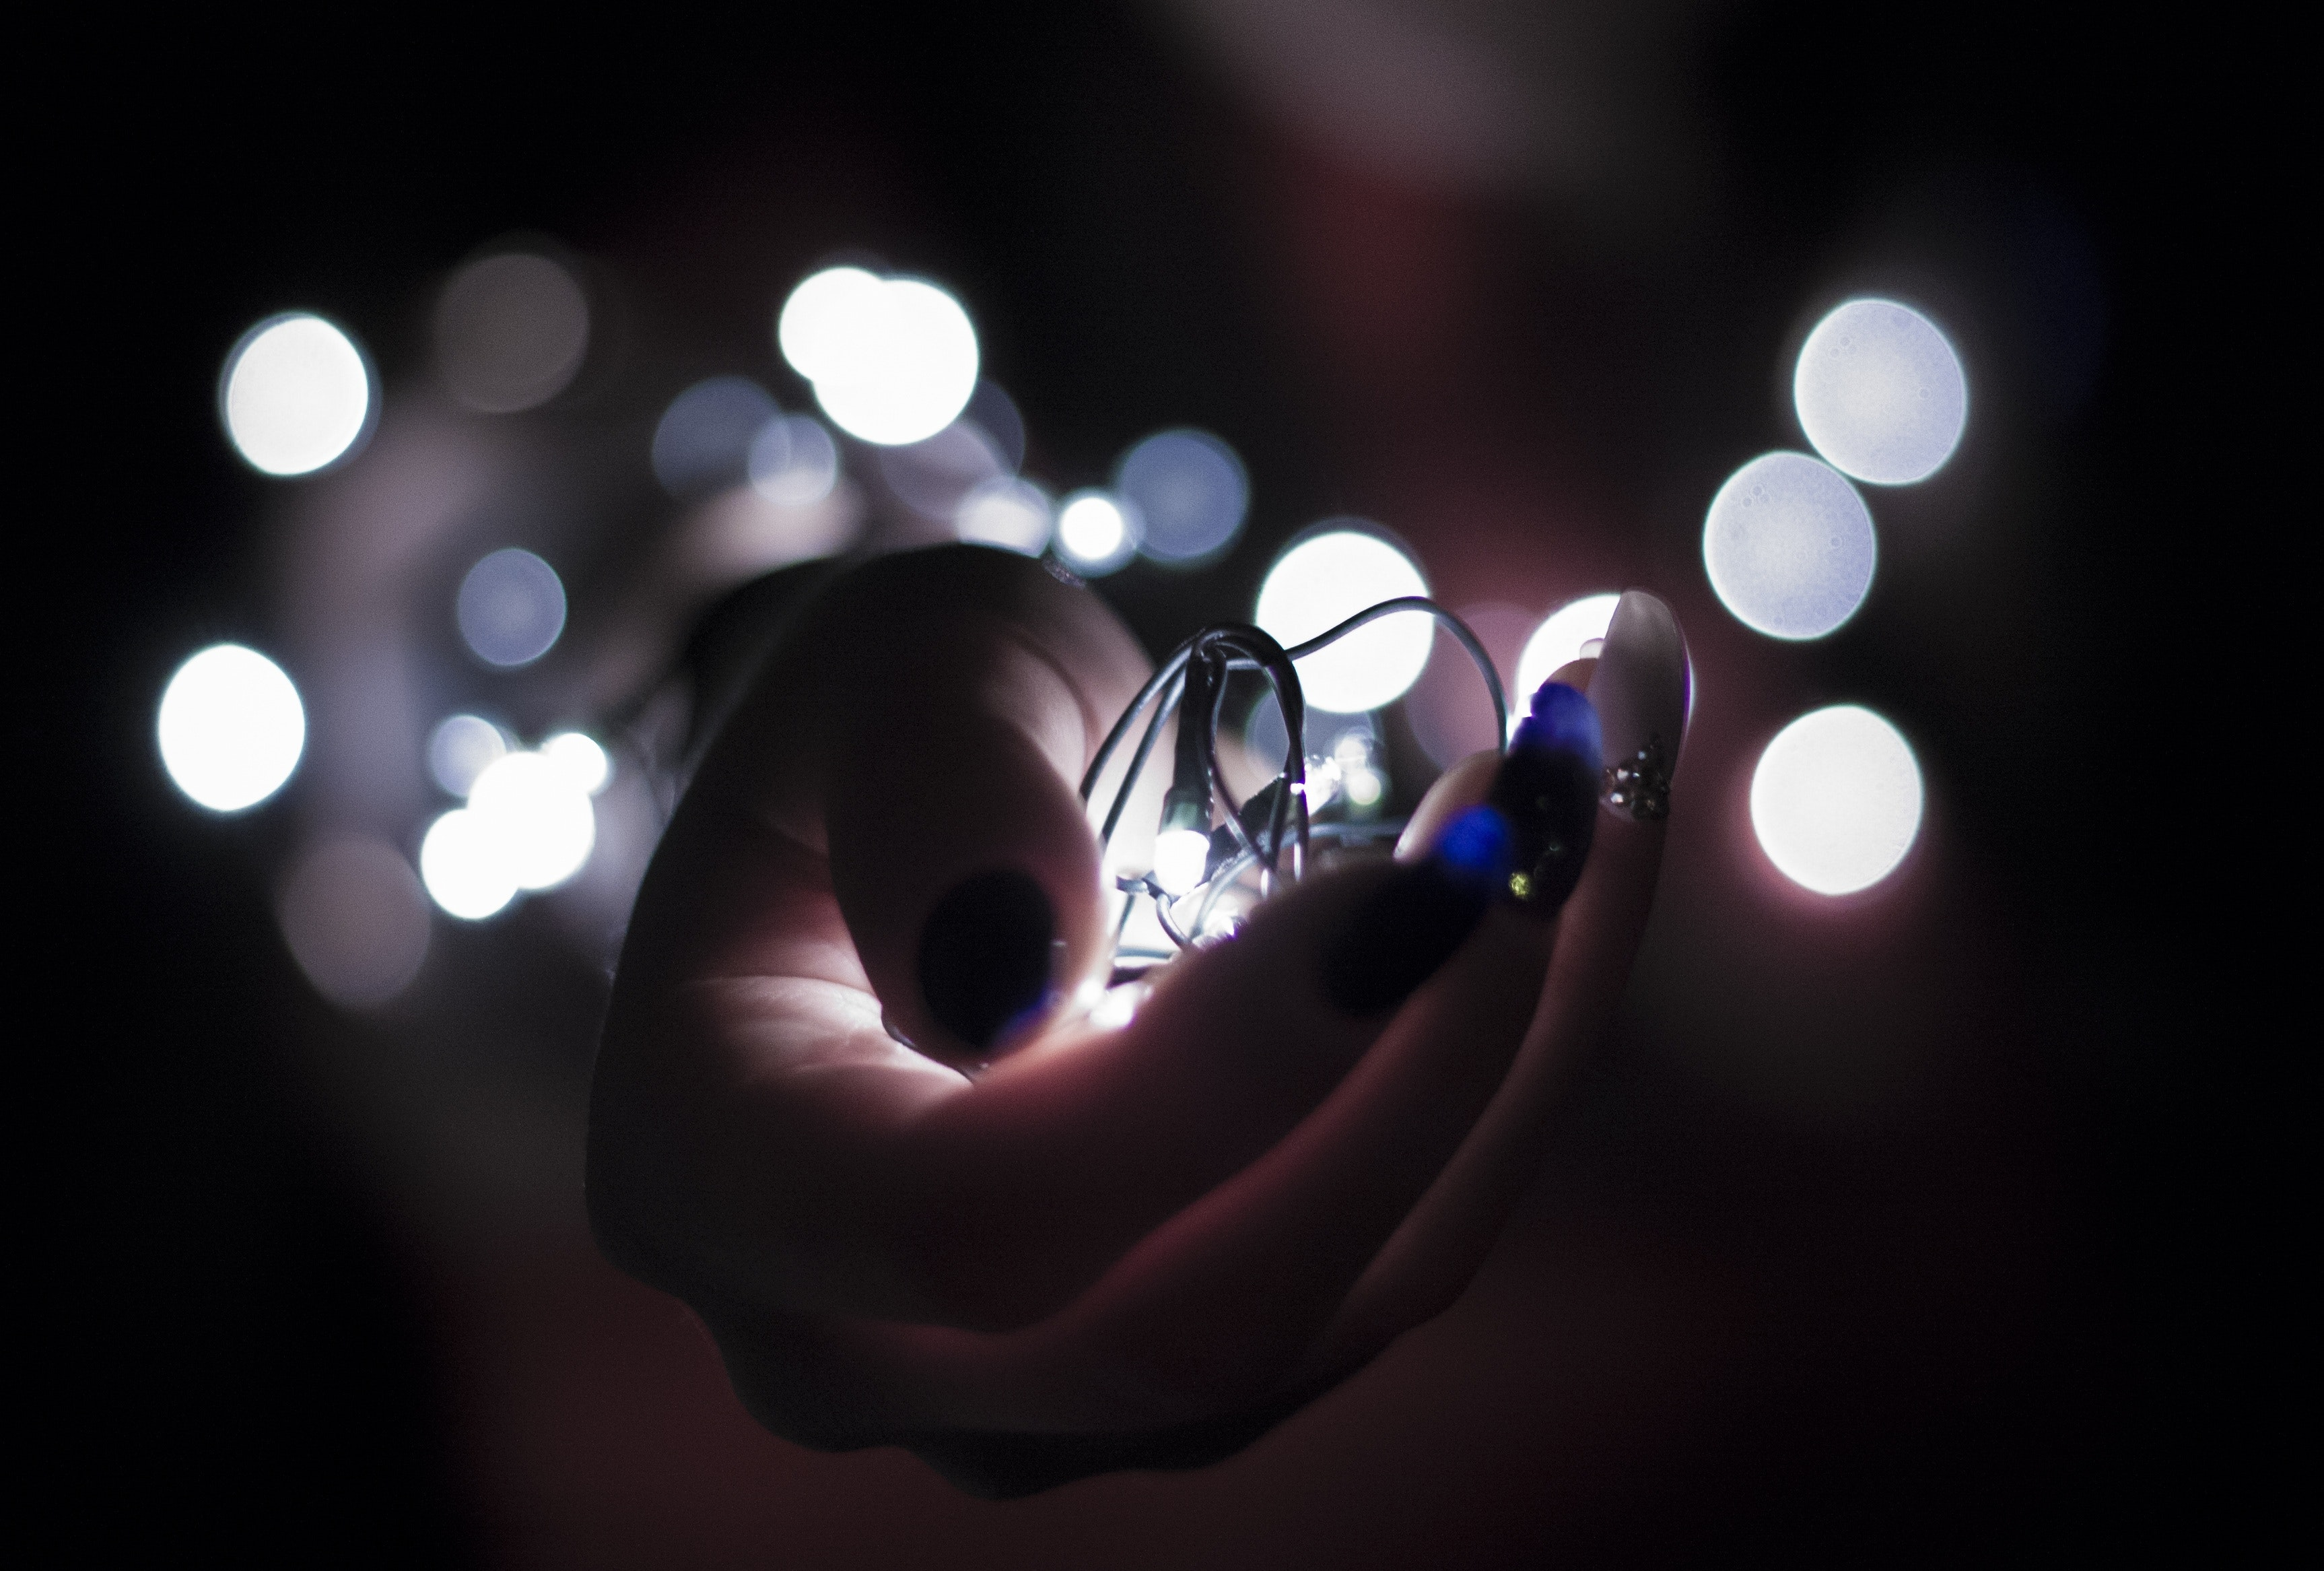 Close Up Photography of Person Holding White String Lights